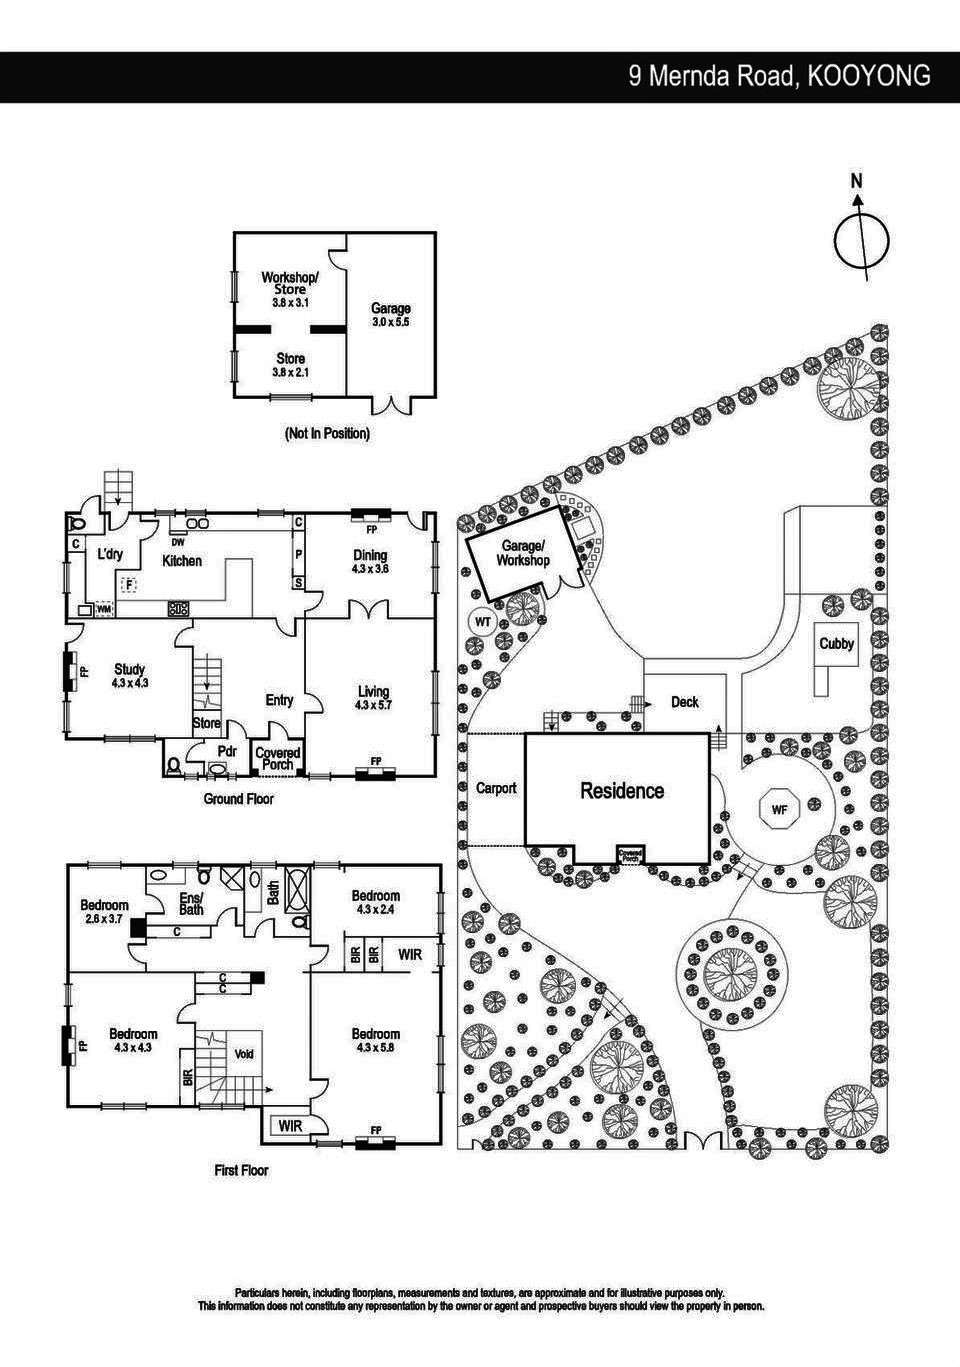 Floorplan of Grnefell, 9 Mernda Road Kooyong Vic 3144